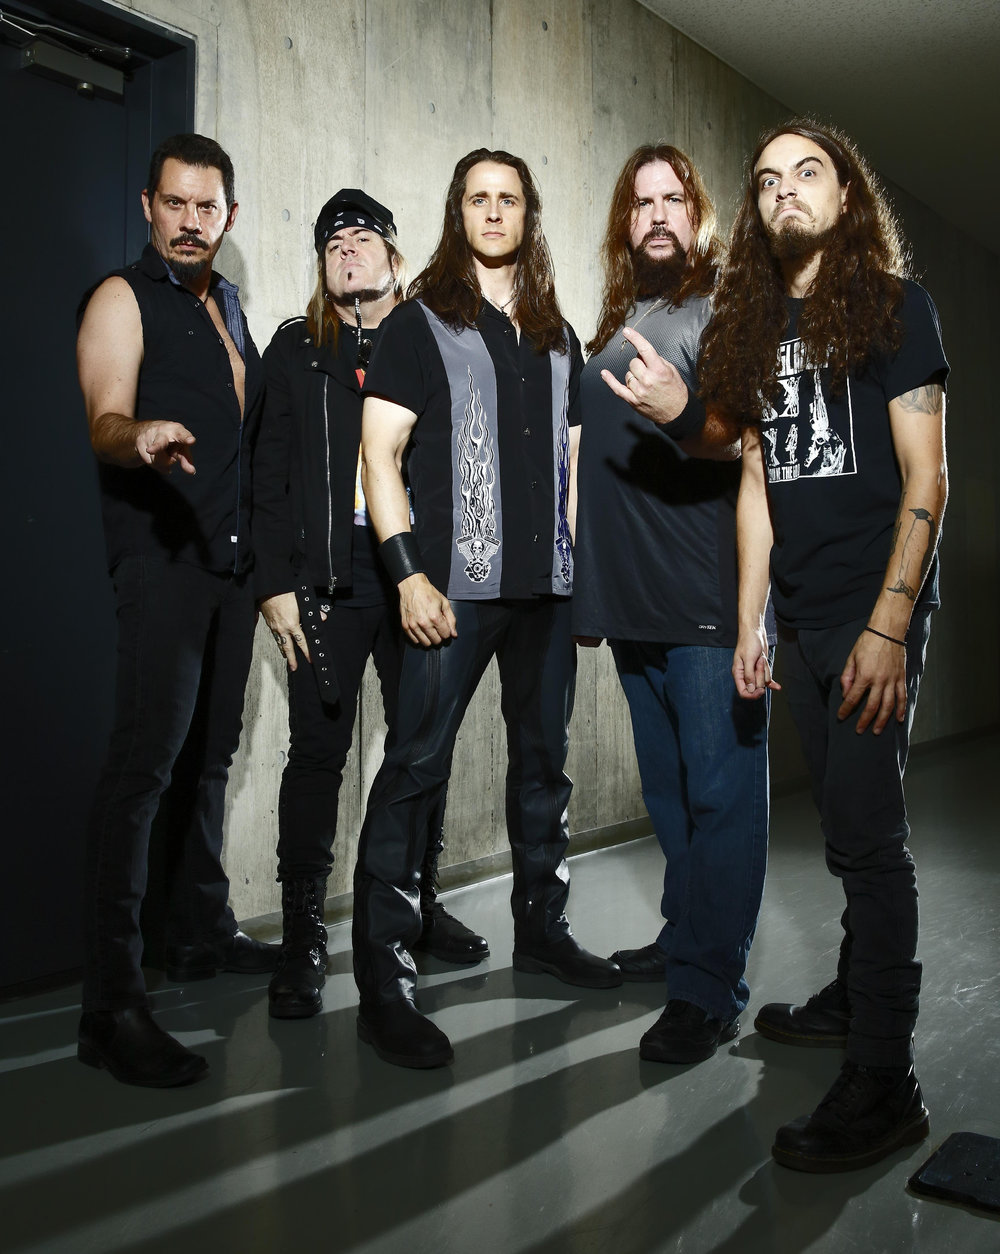 "Since their legendary debut album "" Rock City "" (1977),  RIOT  has released numerous heavy metal classics, including "" Fire Down Under "" (with classics like "" Swords And Tequila ""), their masterpiece "" Thundersteel "" (1988), and the unforgotten "" The Privilege Of Power ""(1990).  After the death of  Mark Reale  and the departure of  Tony Moore ,  Todd Michael Hall  (from Michigan, USA), completed the line-up of the band, which in the meantime performed under the name of  RIOT V  under the auspices of the two long term members and main songwriters  Donnie van Stavern  (bass) and  Mike Flyntz  (guitar). With the critically acclaimed "" Unleash The Fire "" (2014), a pure power metal jewel once again underlined the musical importance and influence of the quintet.  Many artists name-check  RIOT  as an important influence of their musical career and have paid tribute to the power metal godfathers on multiple occasions. The list is long and includes several well-known acts such as  HAMMERFALL  (  Flight Of The Warrio   r ),  Luca Trill's RHAPSODY  (  Thunderstee l ),  AXEL RUDI PELL  (' Warrior' ) and newcomers such as  NIGHT DEMON  (  Road Racin  ),  ALPHA TIGER  (  Flight Of The Warrior  ),  SAVAGE MASTER  (  Swords And Tequila  ) and  STALLION  (  Rock City ) .   RIOT V  truely are metal soldiers and will keep marching and fighting the good fight to bring you the music you've come to know, love and expect from  RIOT V .  Pre-order  your copy of Armor Of Light  here:  http://nuclearblast.com/riotv-armoroflight"